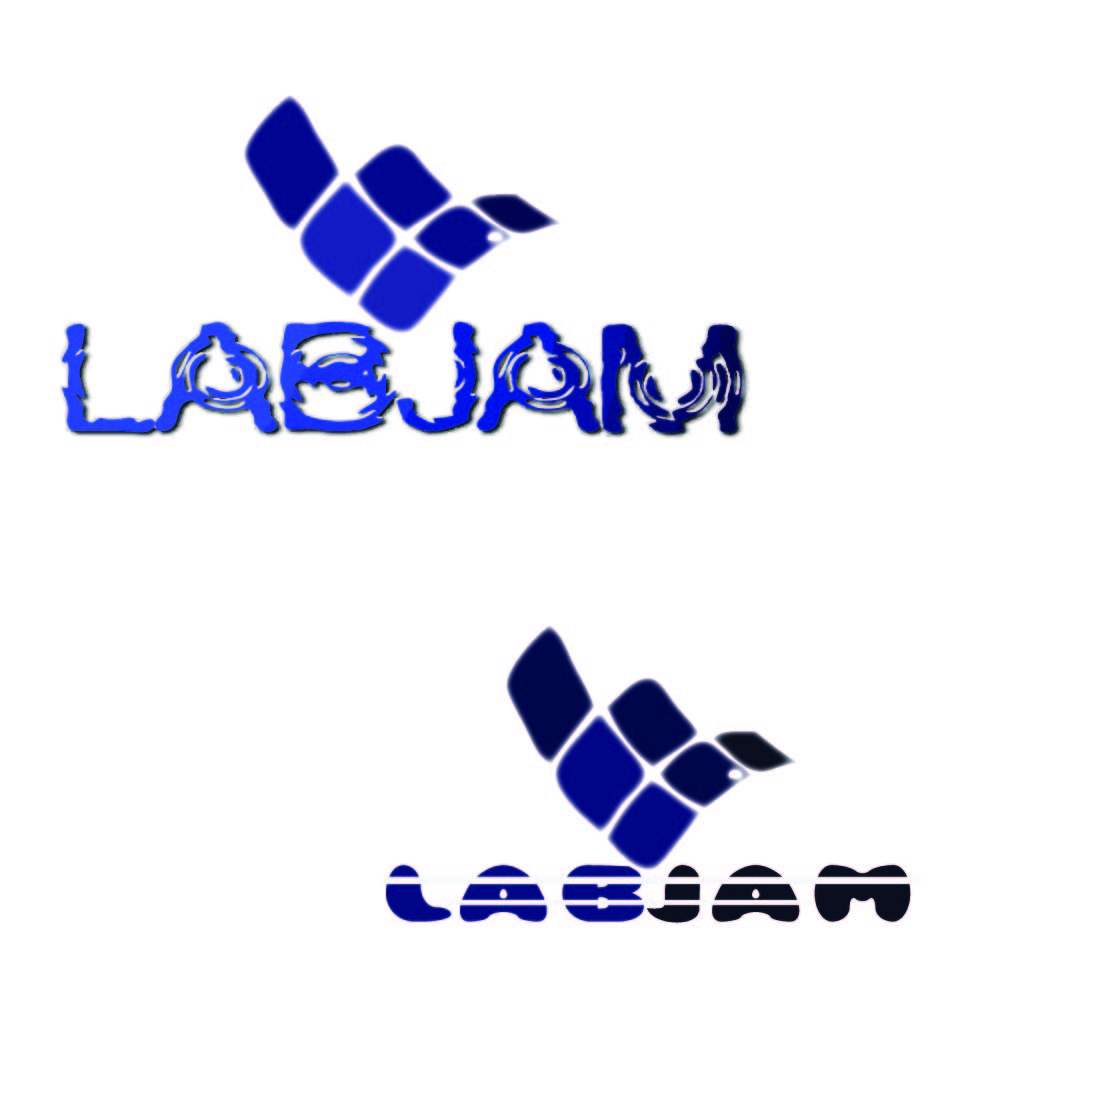 Logo Design by Saunter - Entry No. 247 in the Logo Design Contest Labjam.